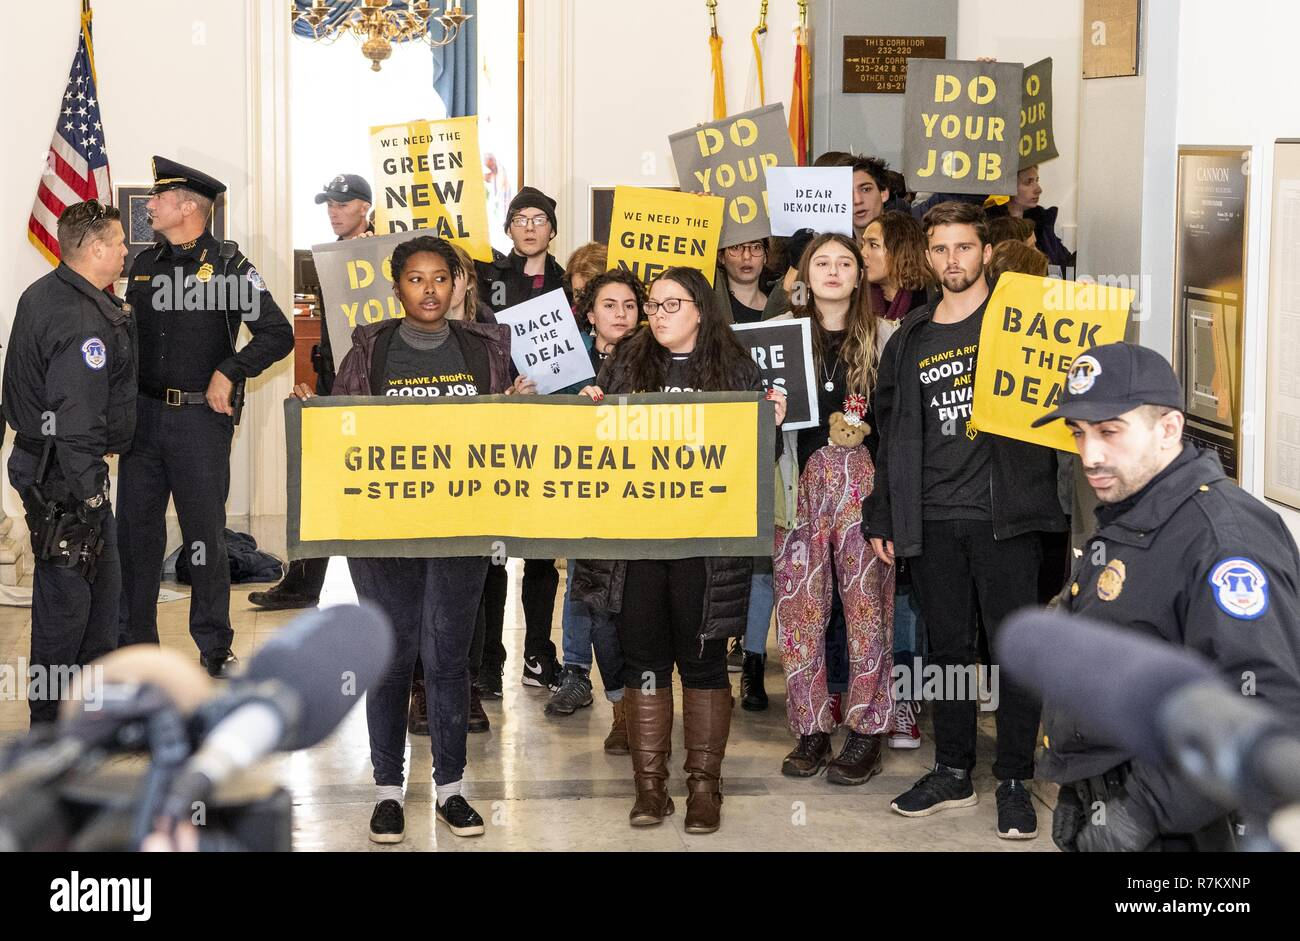 Washington, DC, USA. 10th Dec, 2018. Sunrise Movement protest inside the office of US Representative Nancy Pelosi (D-CA) to advocate that Democrats support the Green New Deal, at the US Capitol in Washington, DC on December 10, 2018. Credit: Michael Brochstein/ZUMA Wire/Alamy Live News Stock Photo